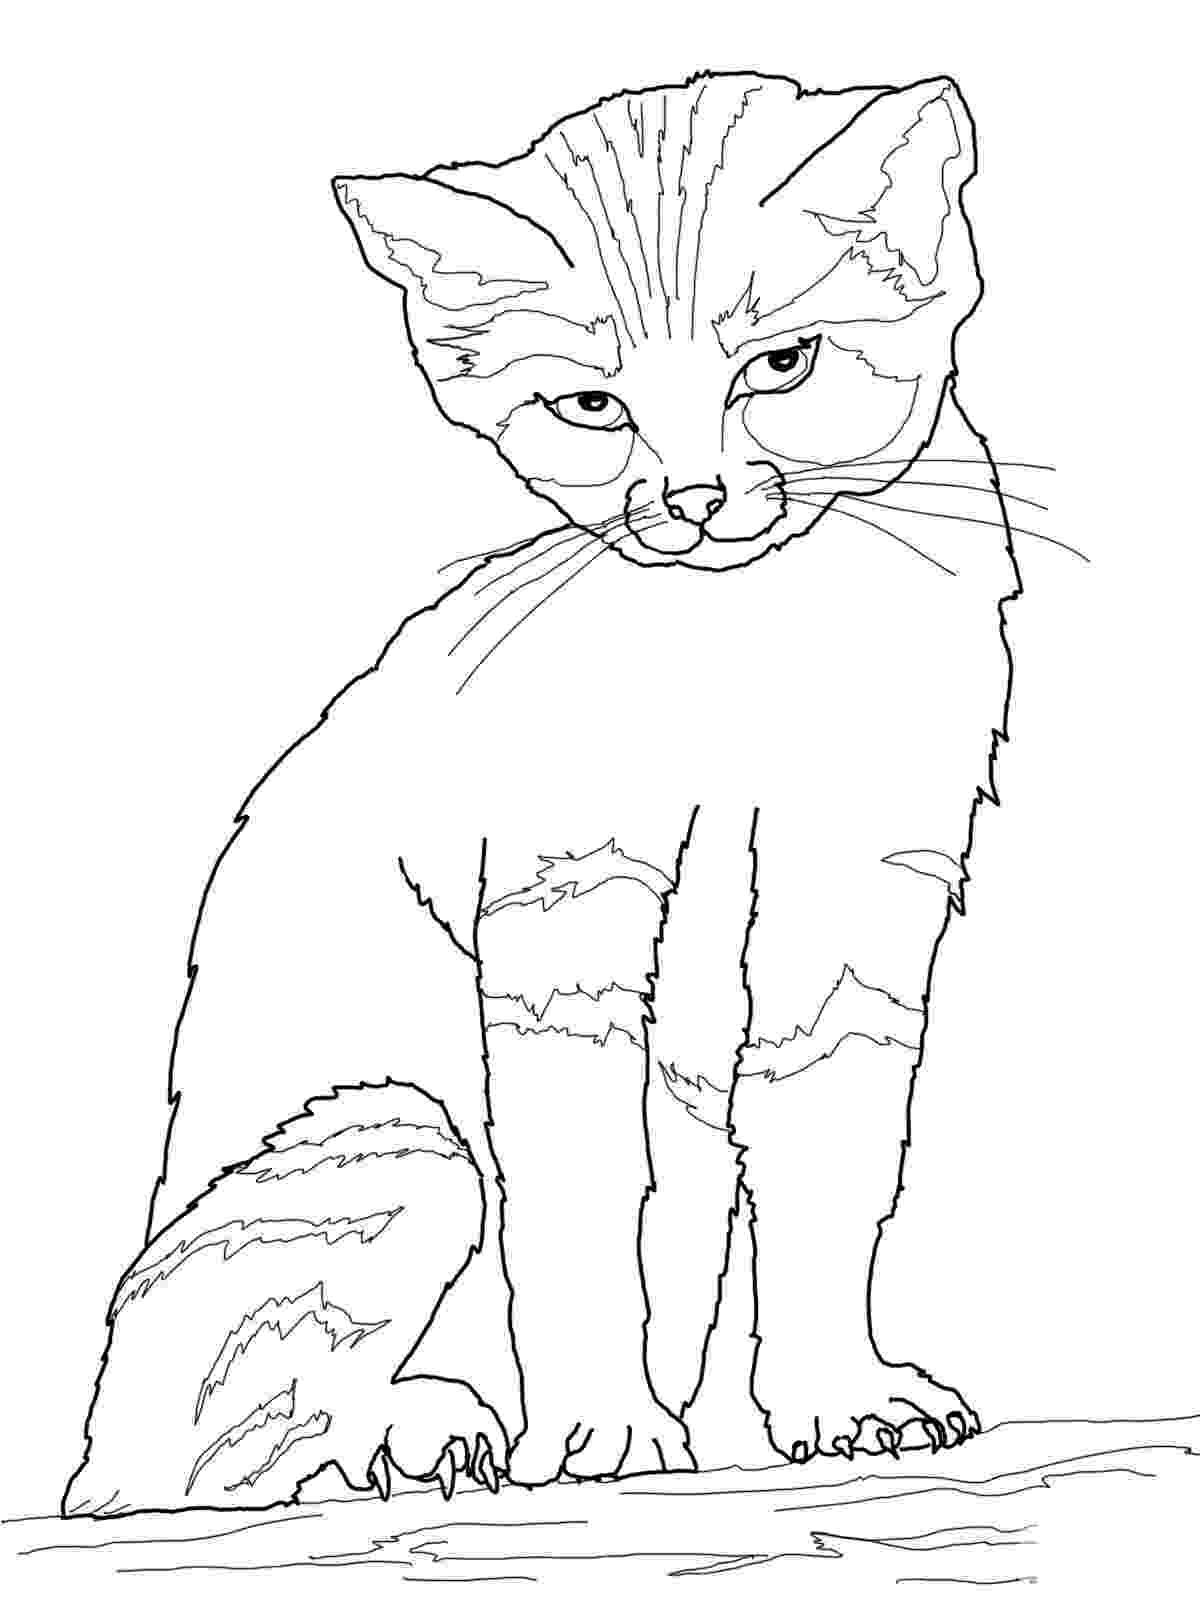 cat pictures for kids to color free printable cat coloring pages for kids cat pictures to color kids for